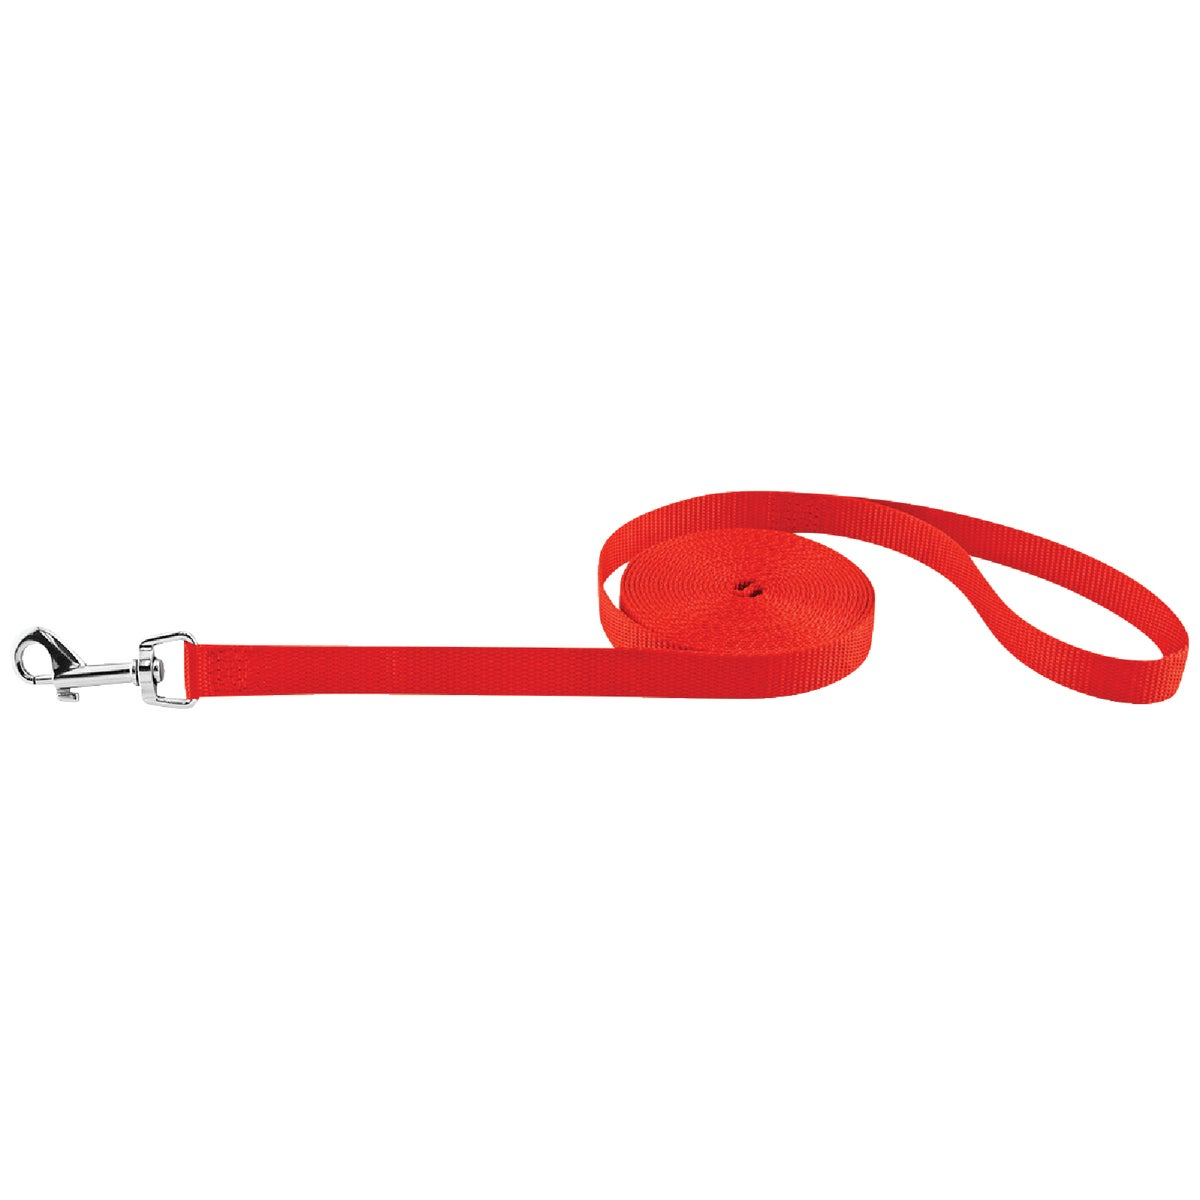 5/8X15 POLY BAG LEAD - 14515 by Westminster Pet